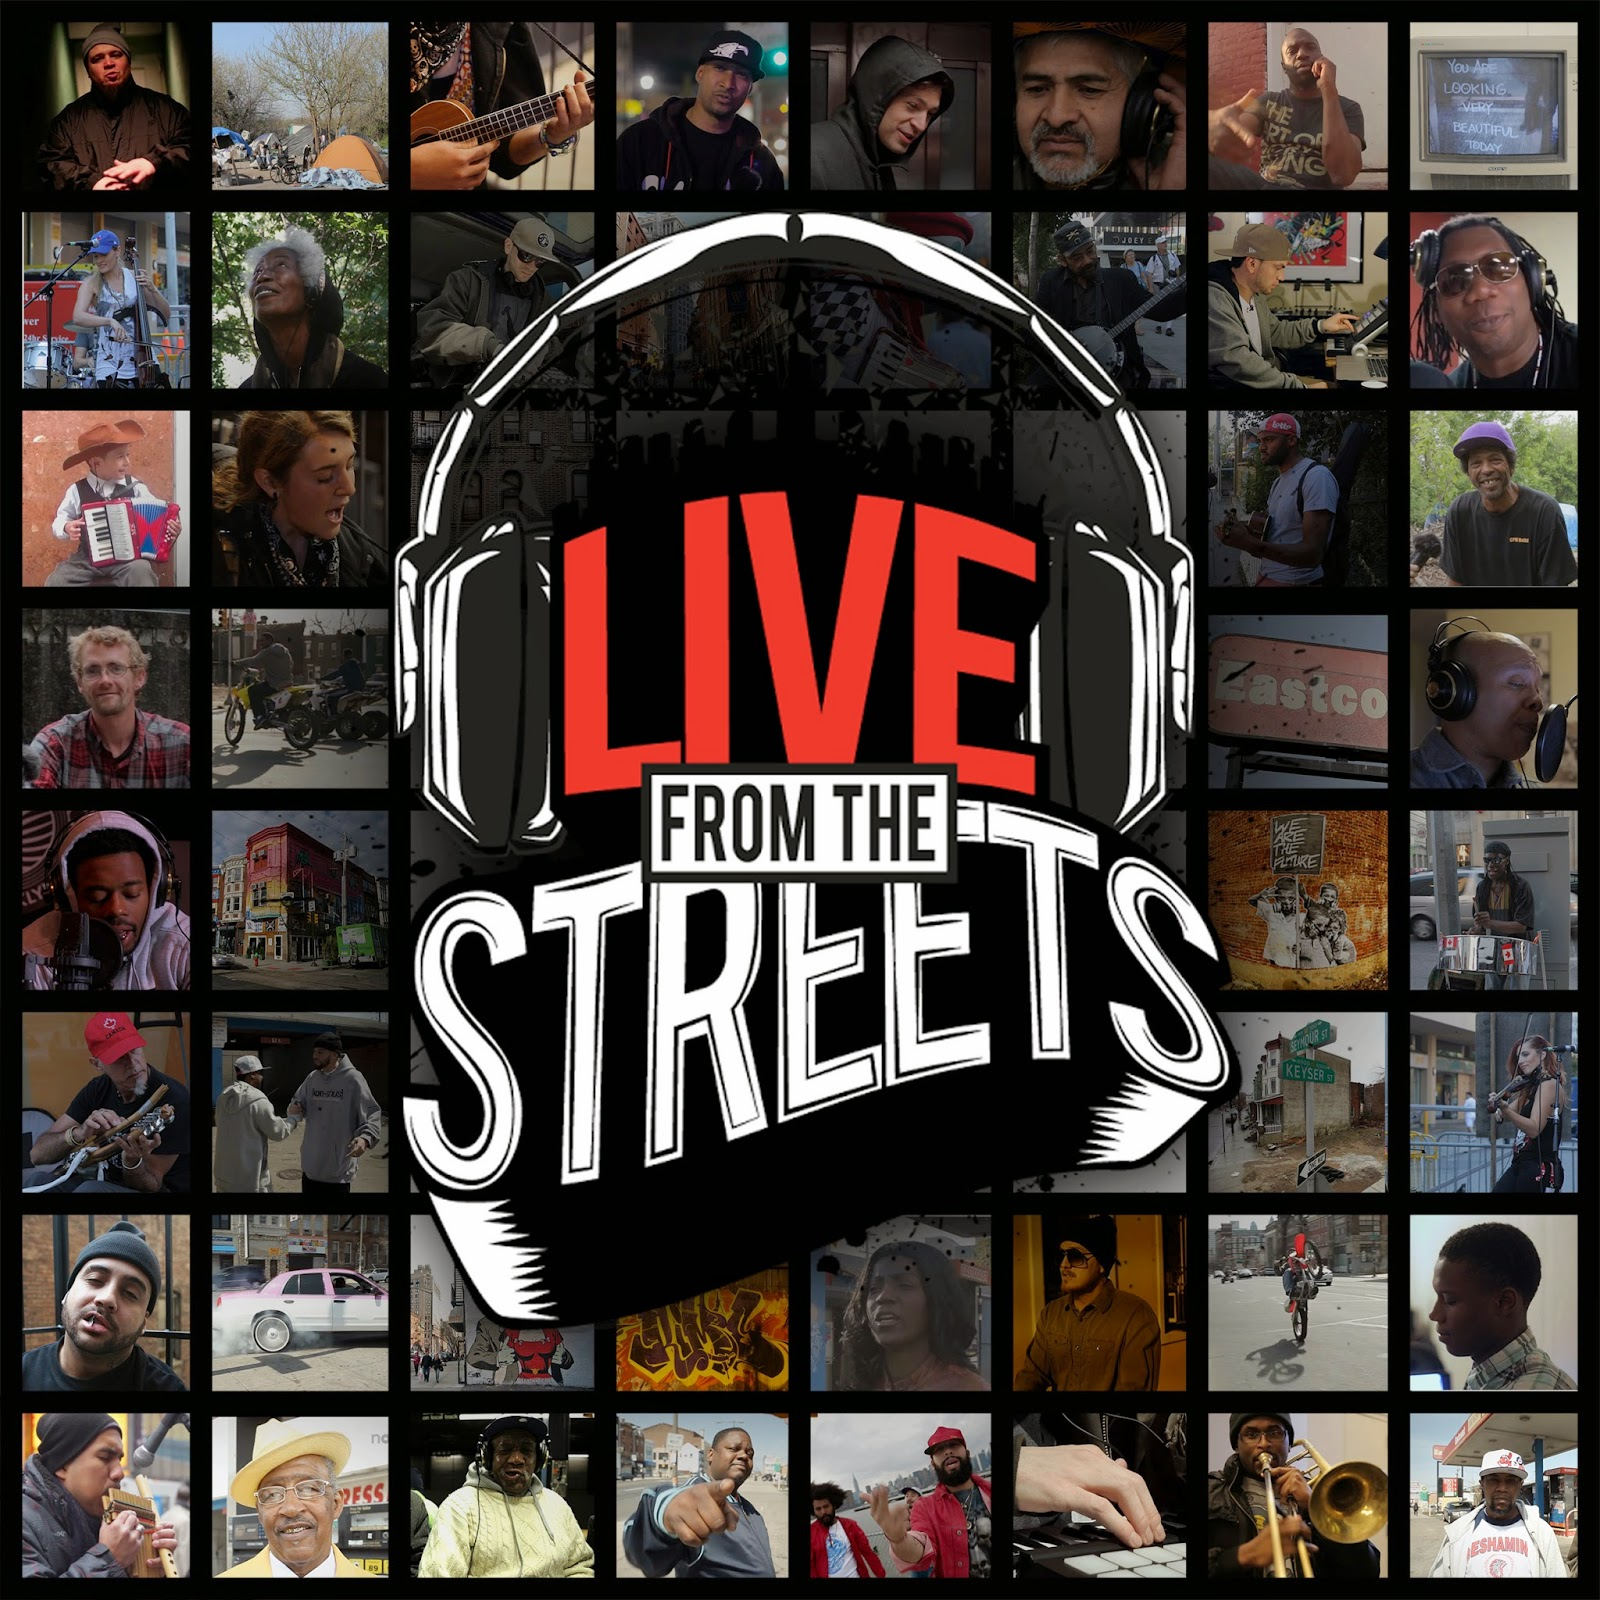 Mr. Green: Live From the Streets (2015)